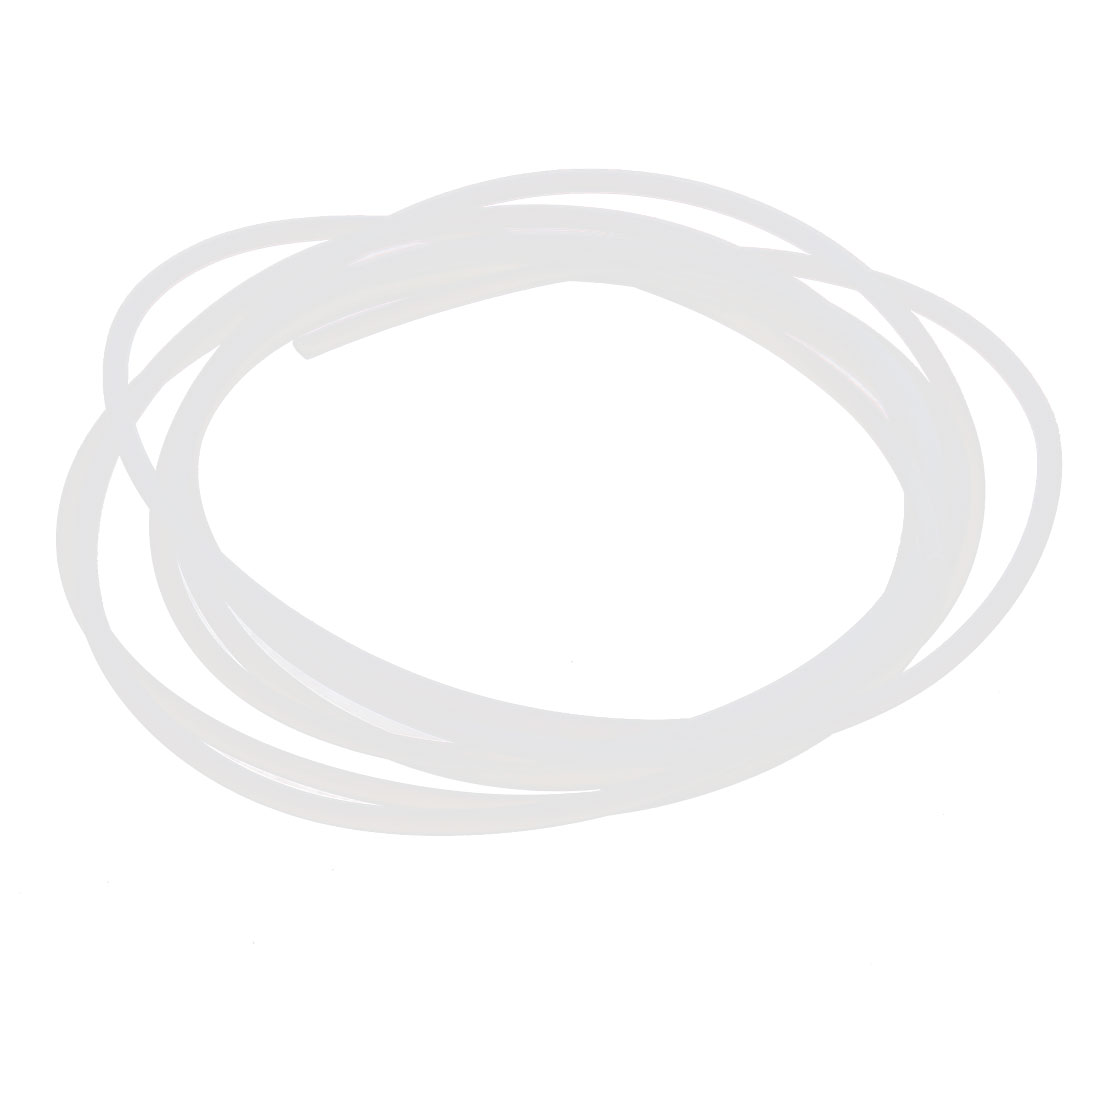 5Meters 2mm ID 3mm OD PTFE Tubing Tube Pipe for 3D Printer RepRap